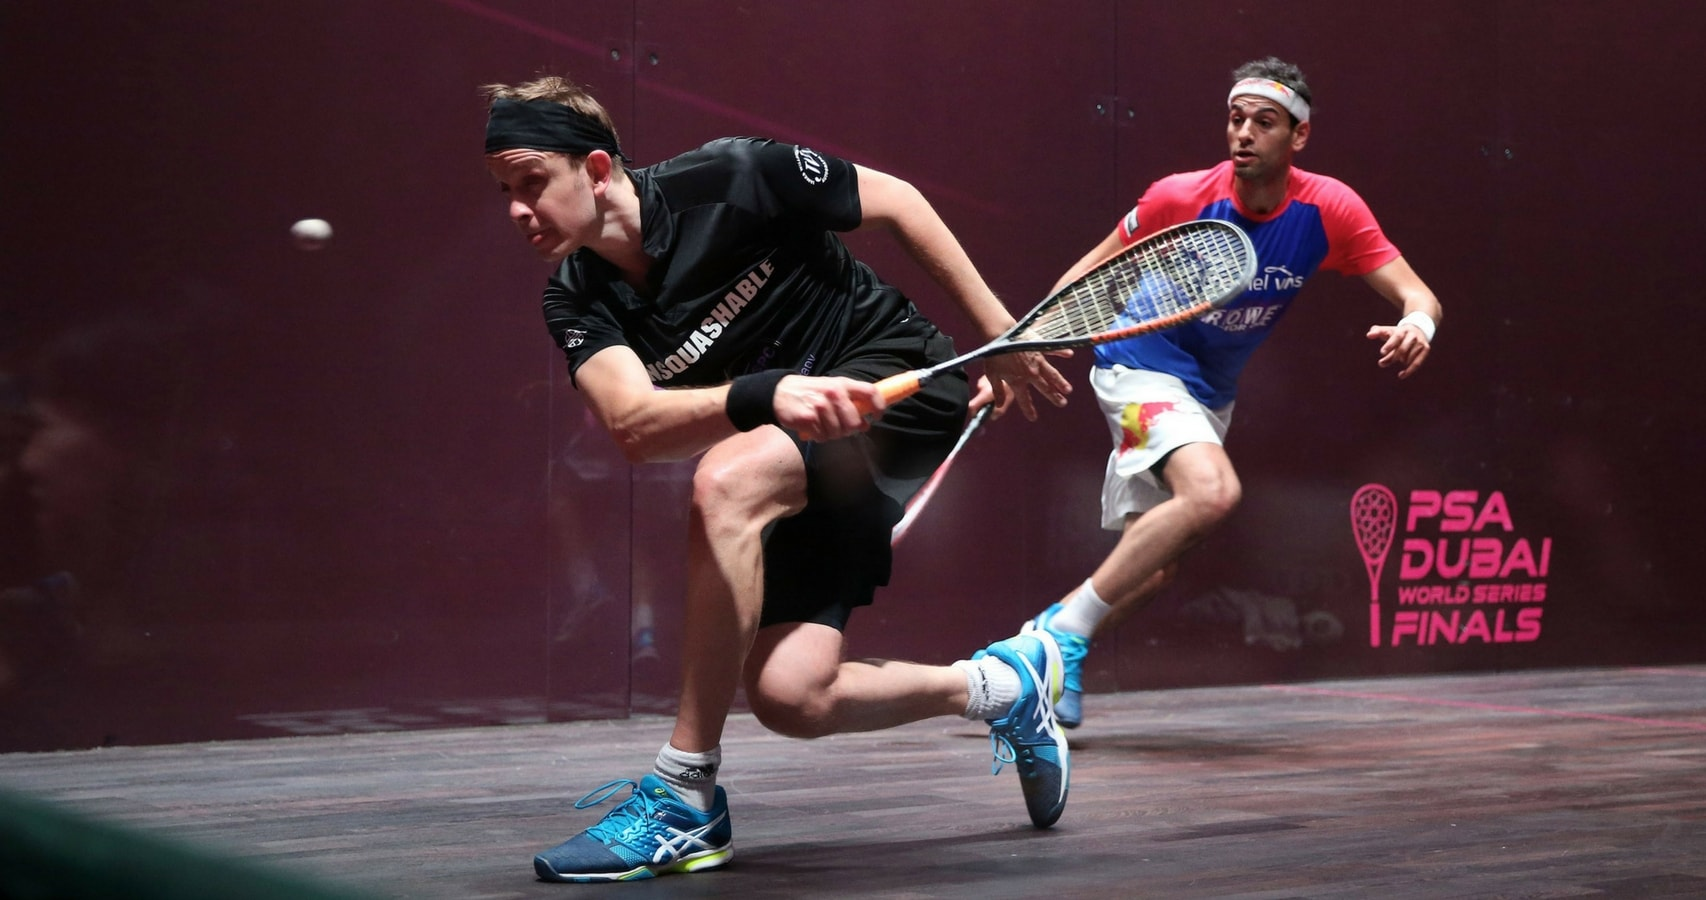 James Willstrop lost to Mohamed ElShorbagy in the final of the World Series Finals in Dubai